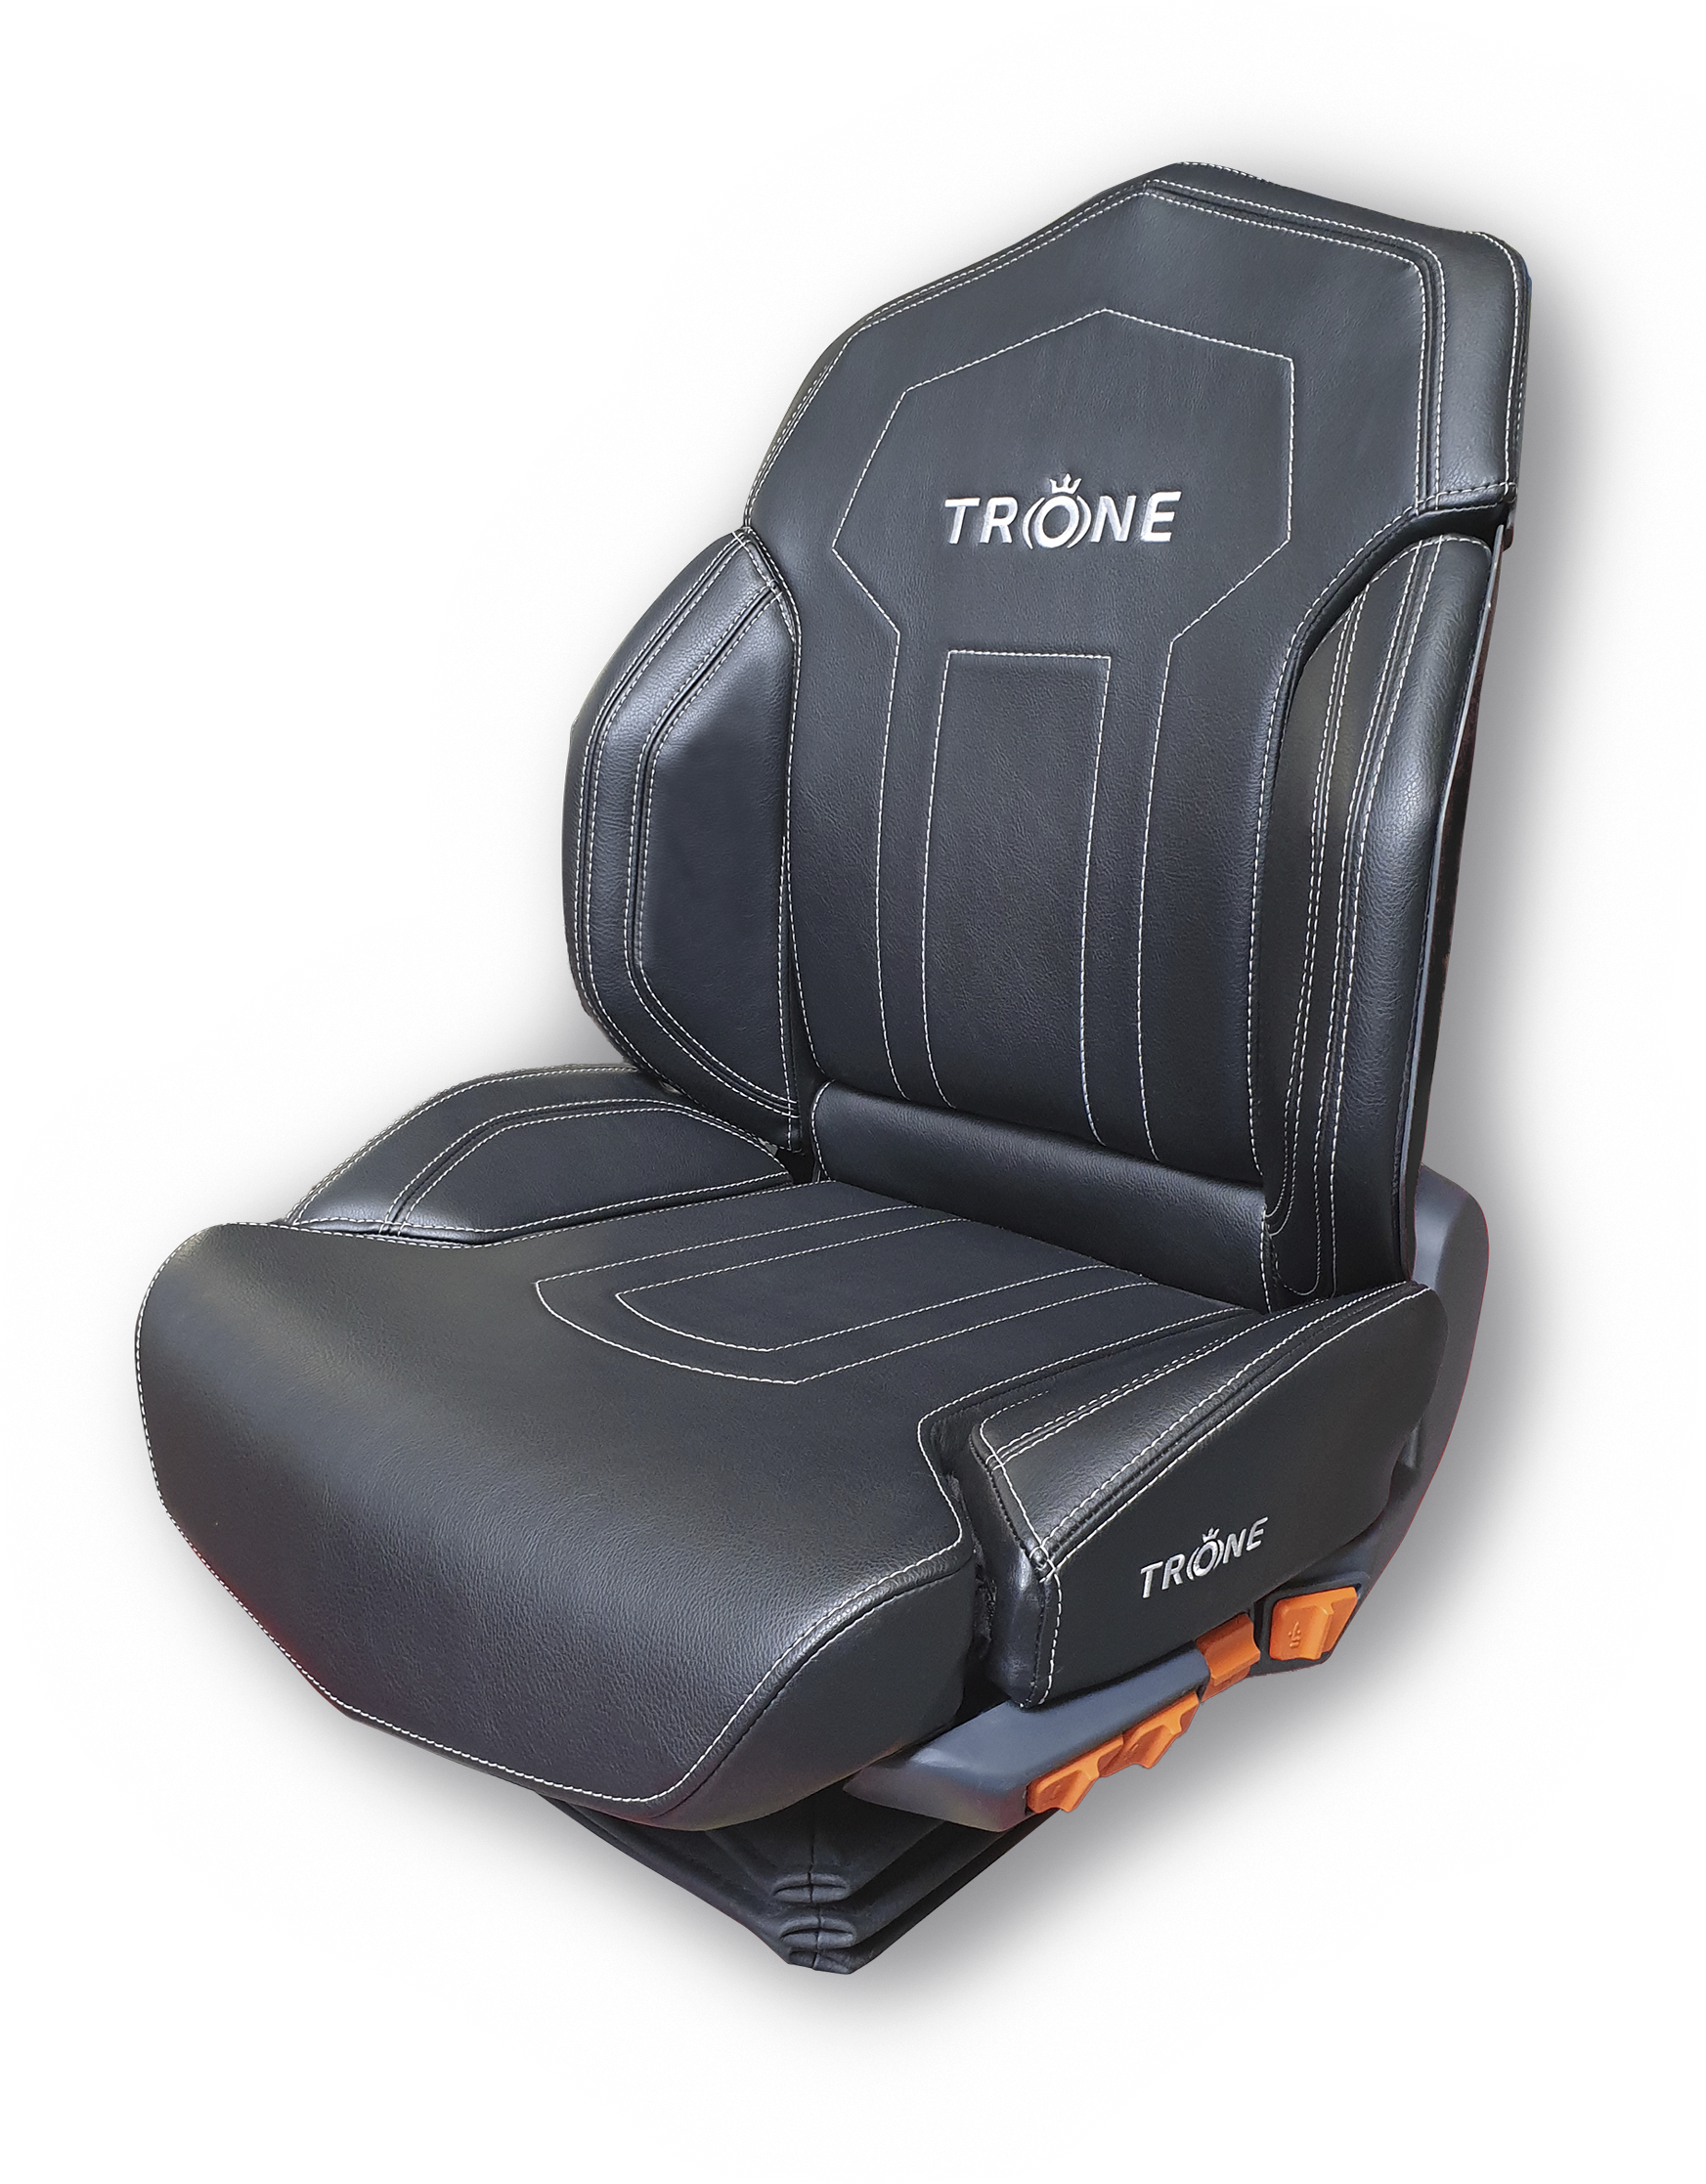 Trone-Low-Back-narrow